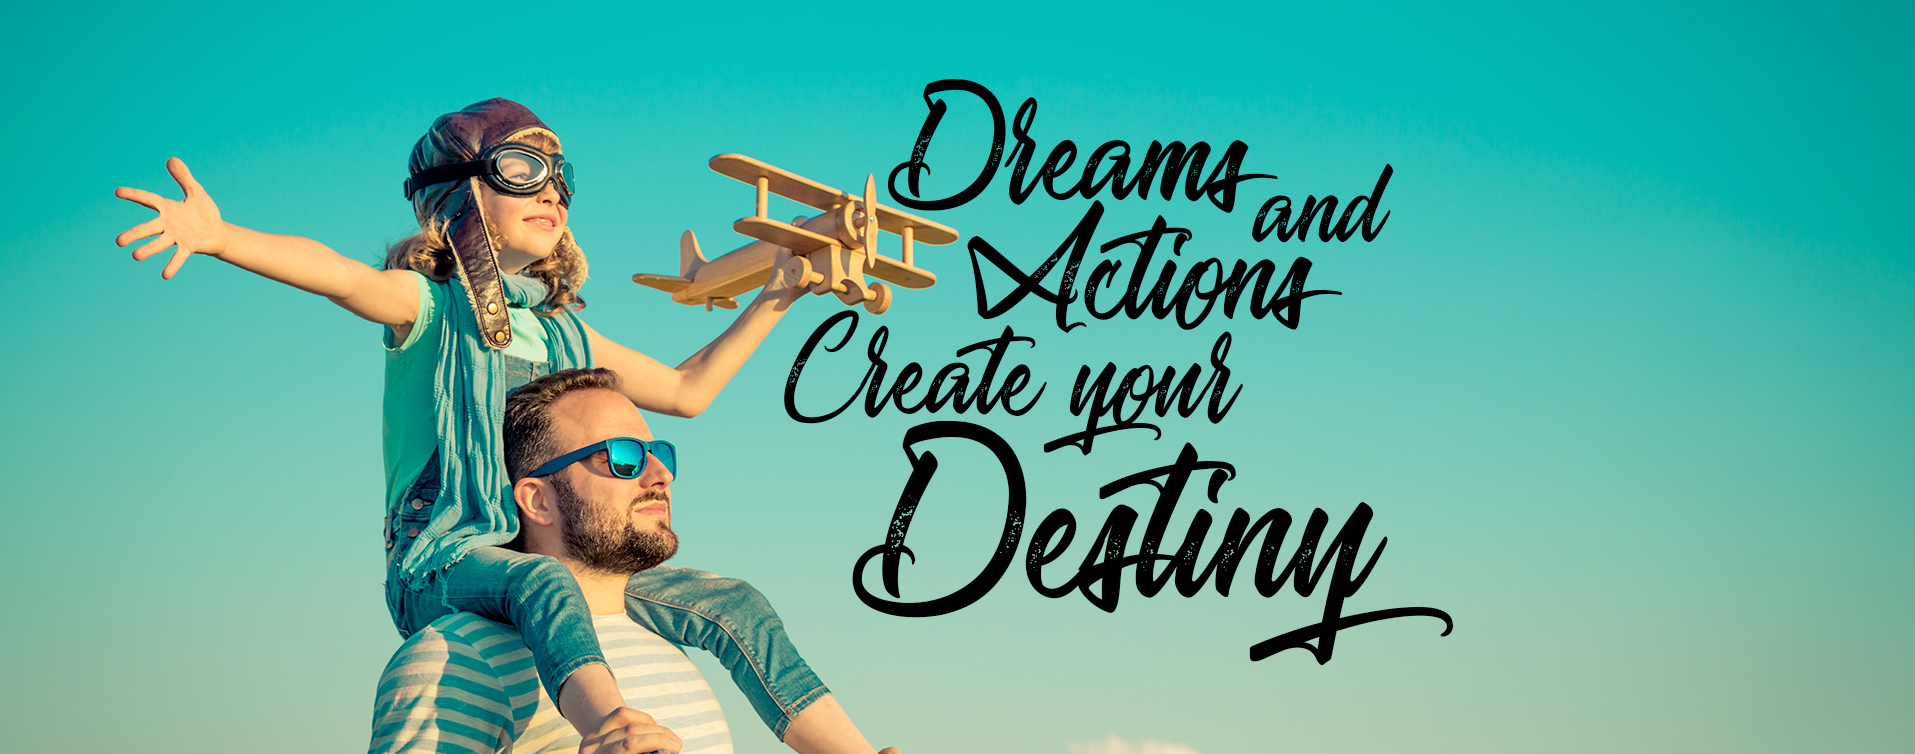 Facilitations - Psych-k - Dreams and actions create your Destiny